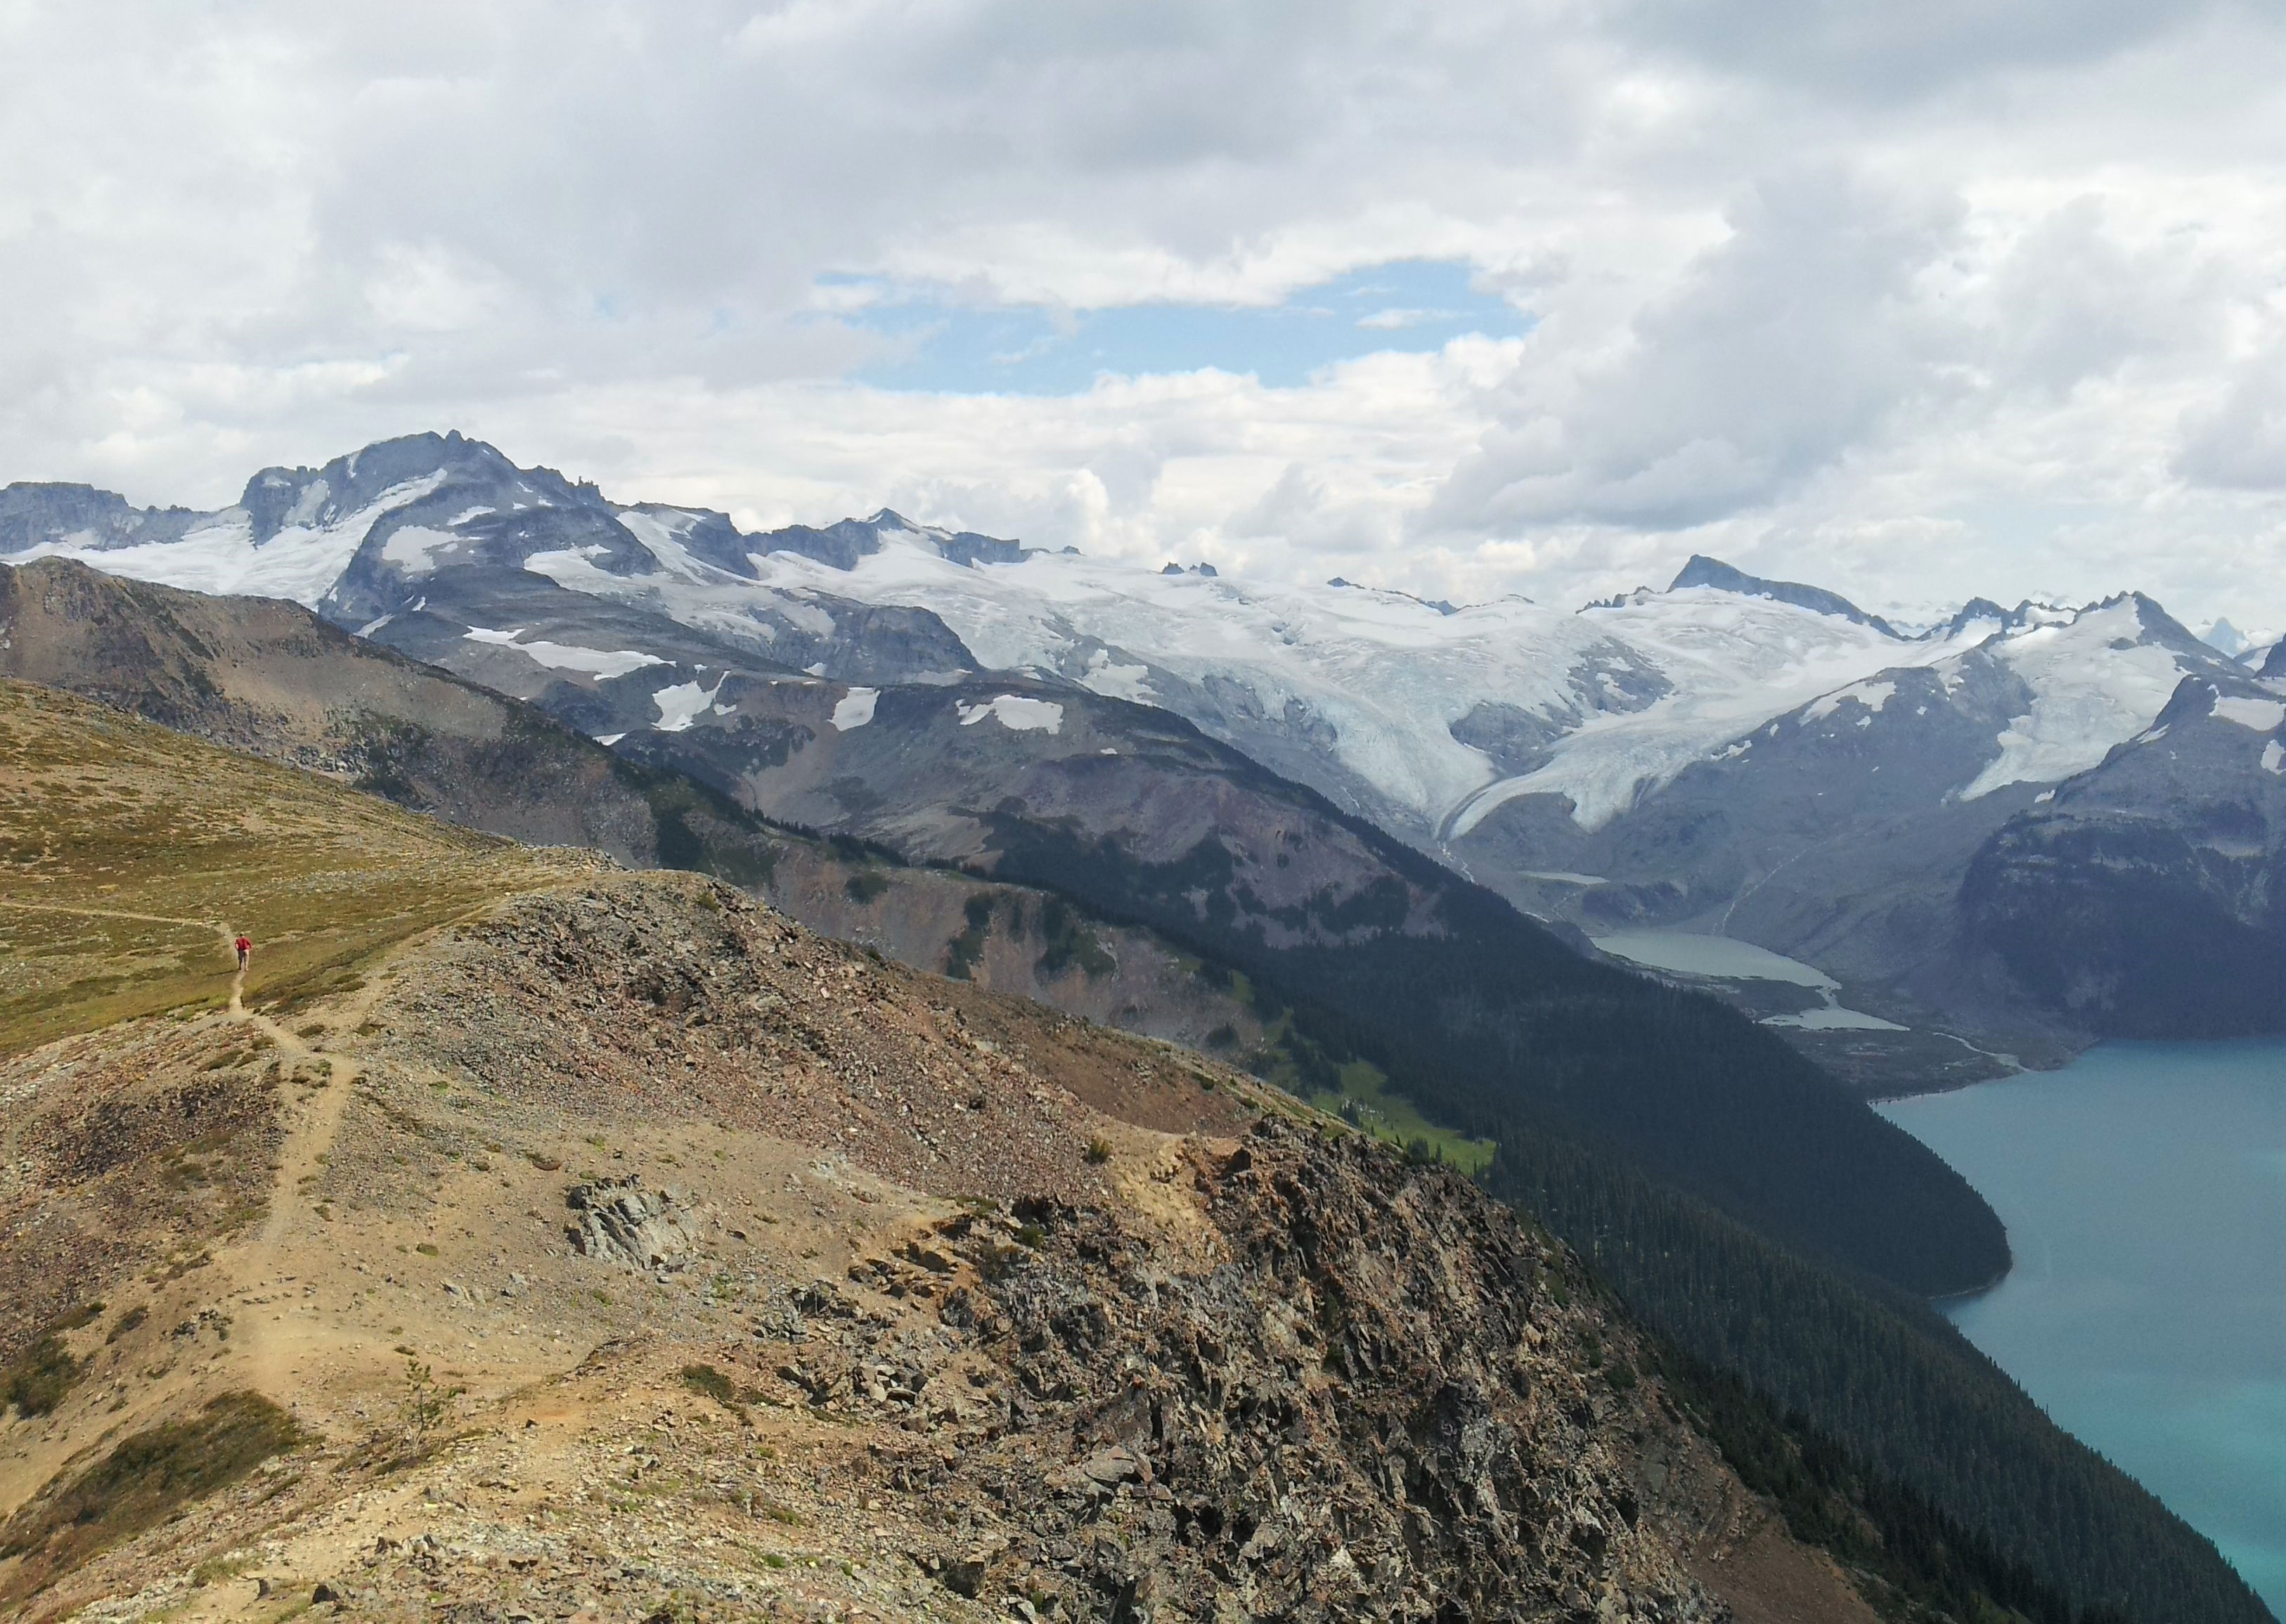 The view of the snow-capped mountains and lake from Panorama Ridge